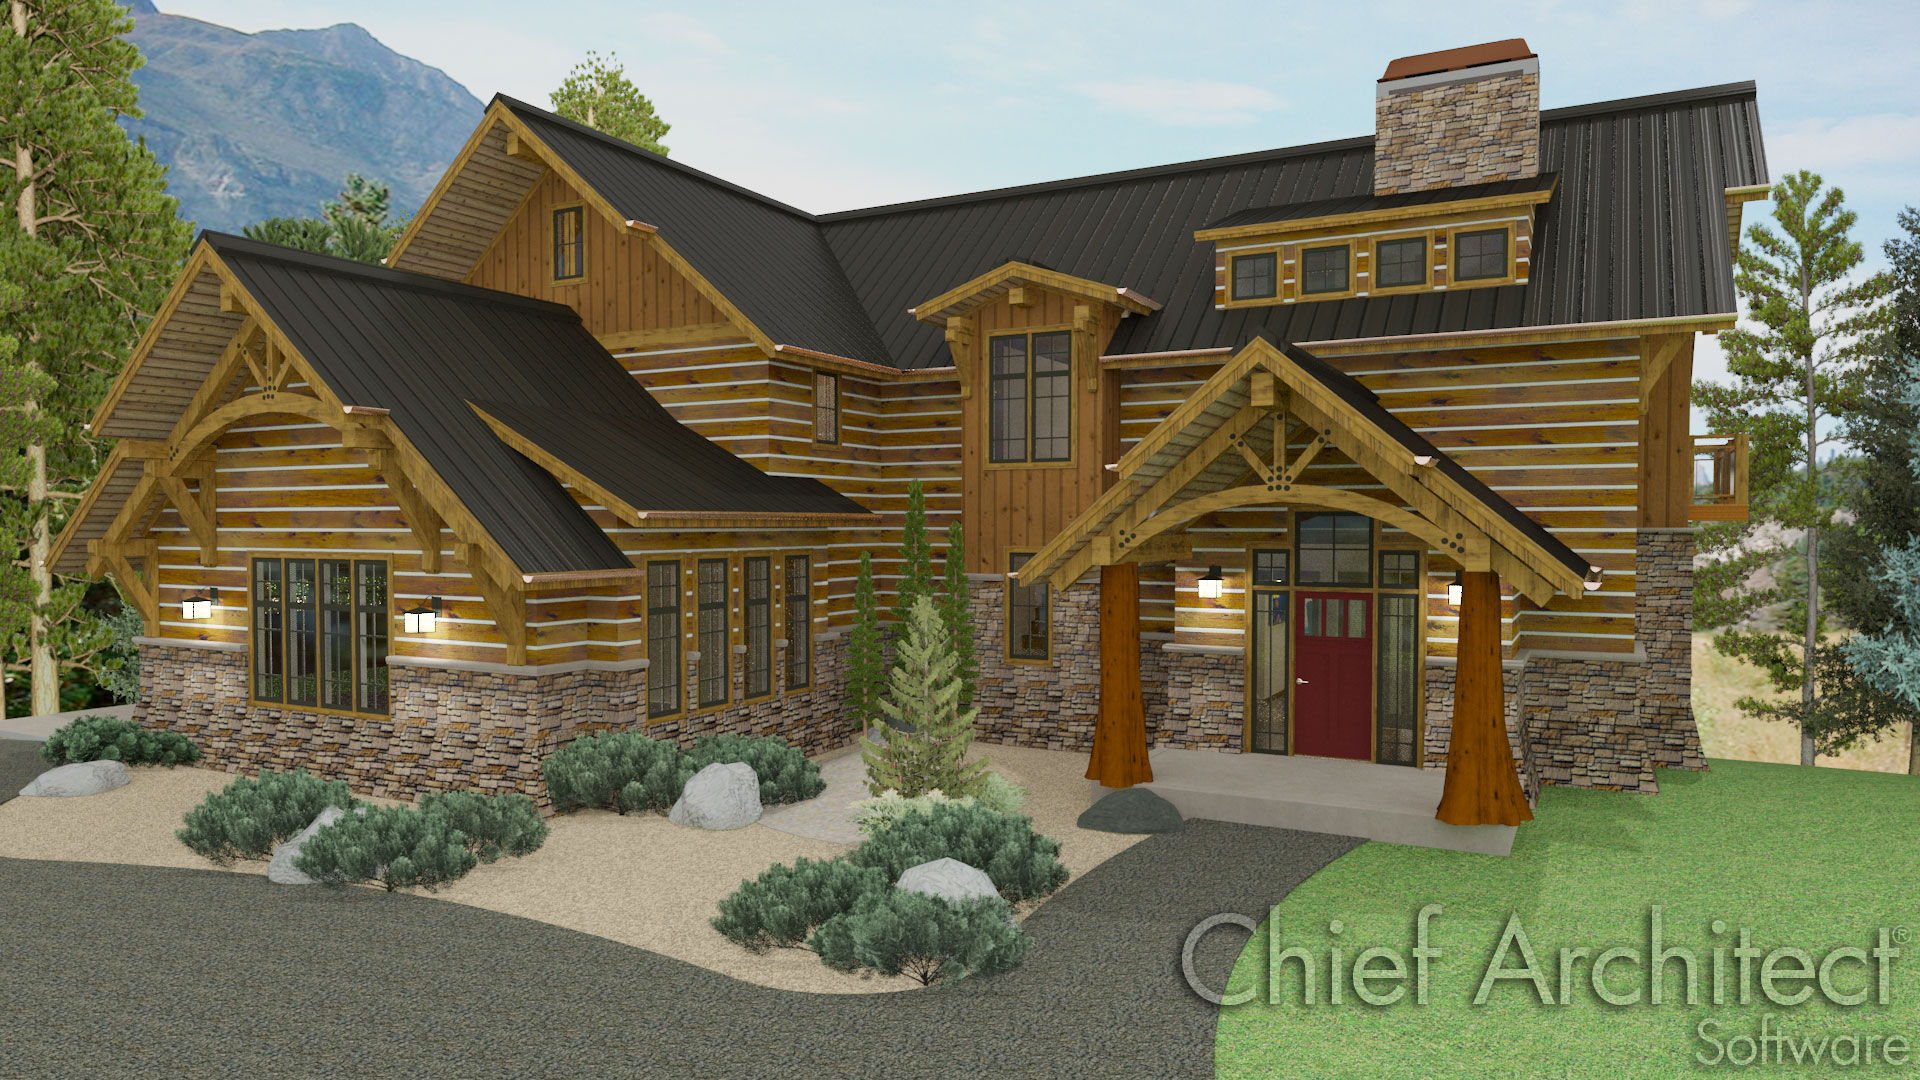 timber home design.  on timber frame construction in the form of a classic mountain home with shed dormer prow roof overhangs custom trusses log siding chinking Chief Architect Home Design Software Samples Gallery